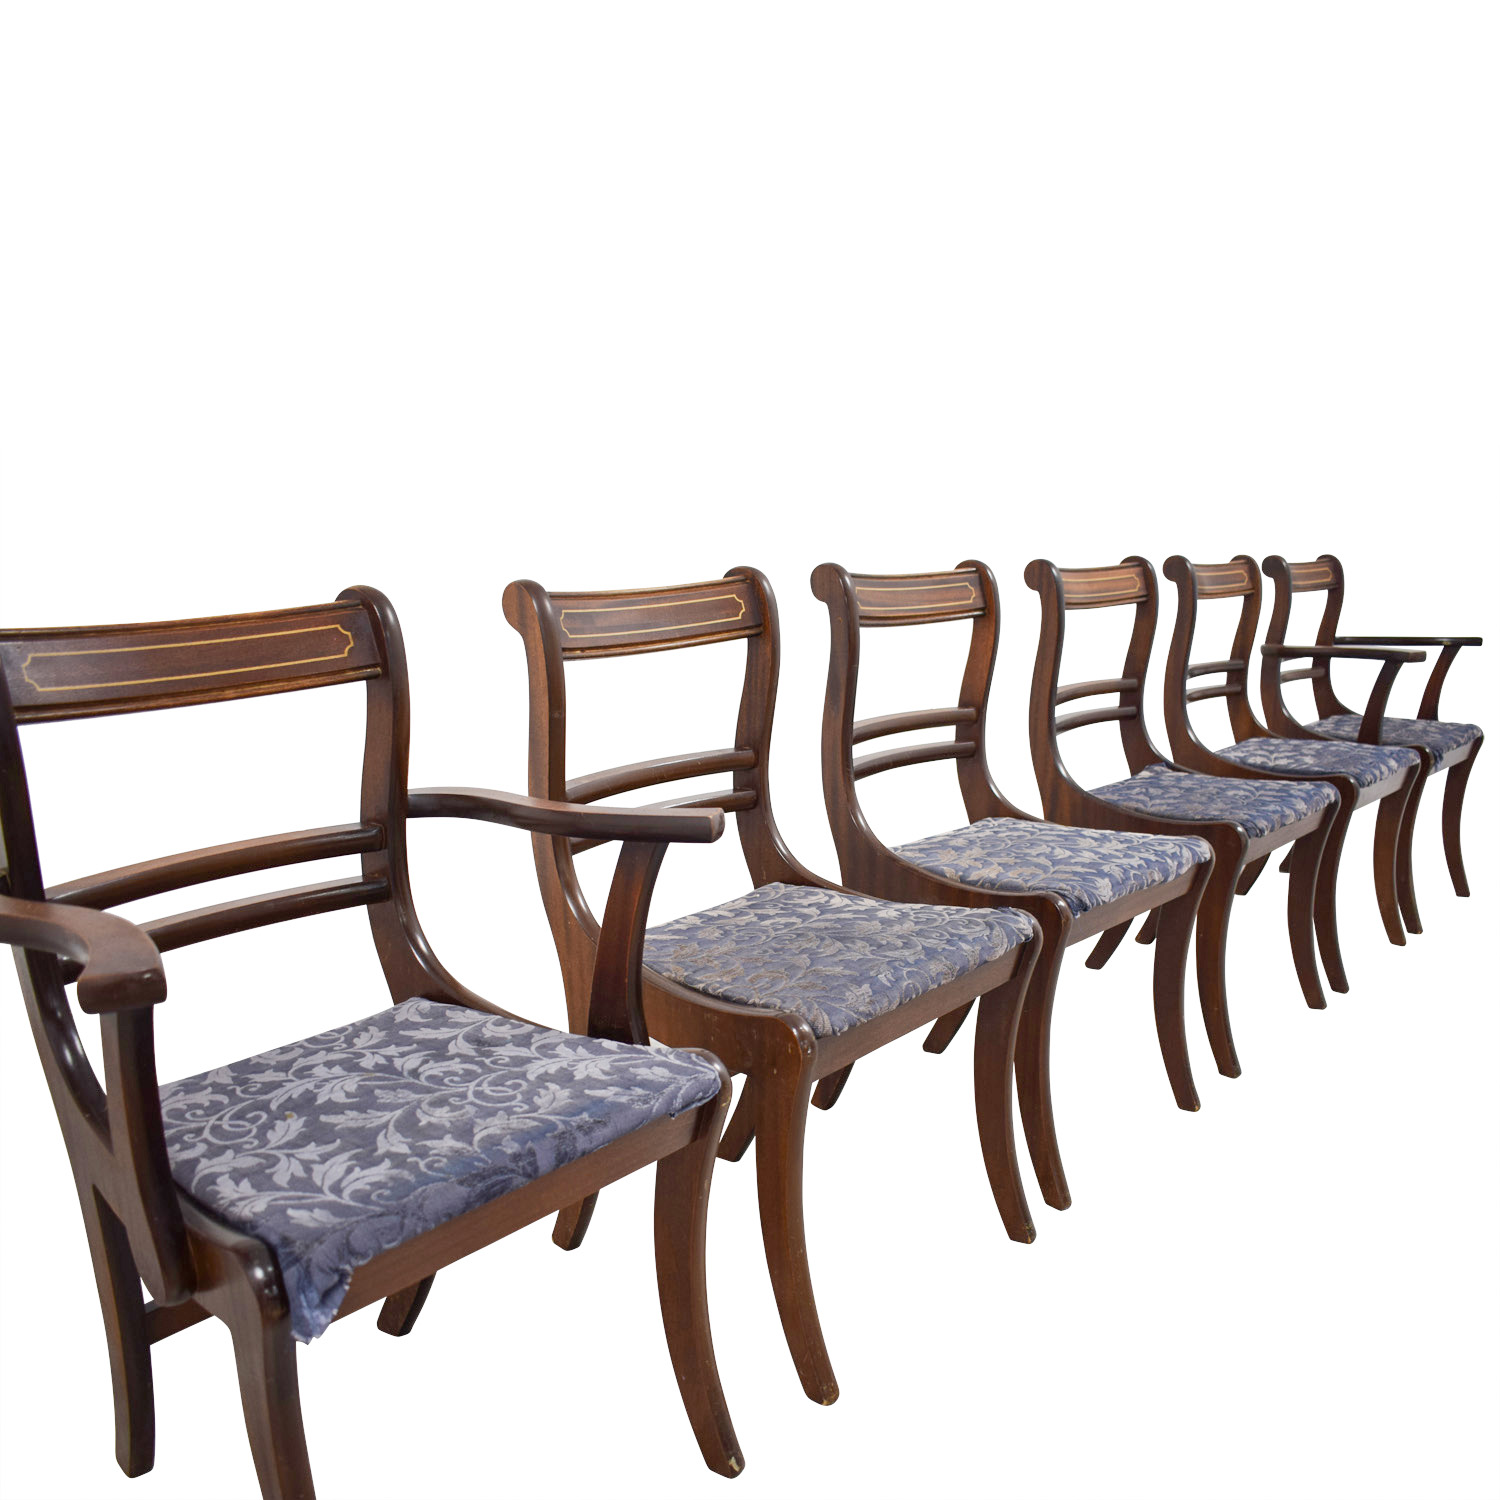 Wood Dining Chairs with Removable Blue Cushions for sale